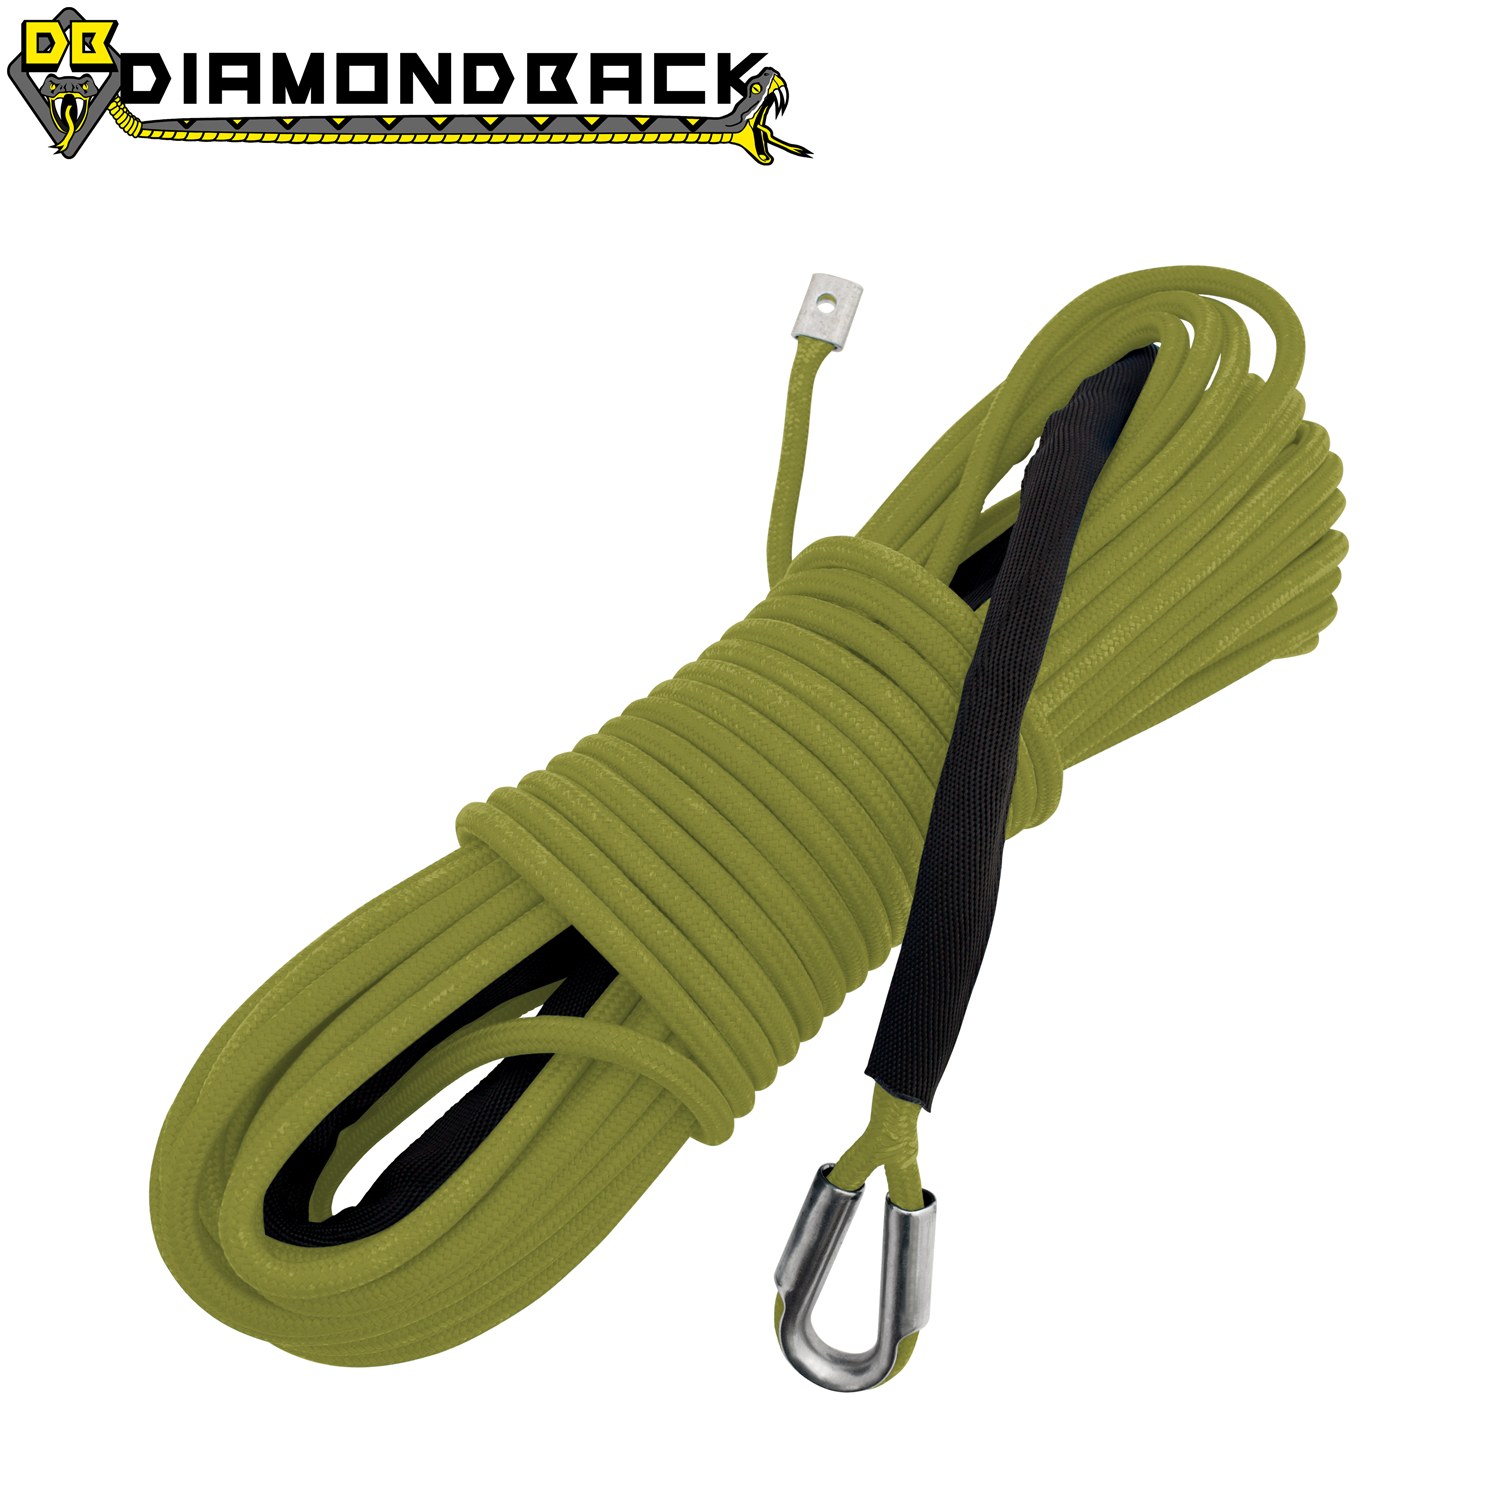 "1/4"" X 55' Diamondback Mainline Winch Rope"